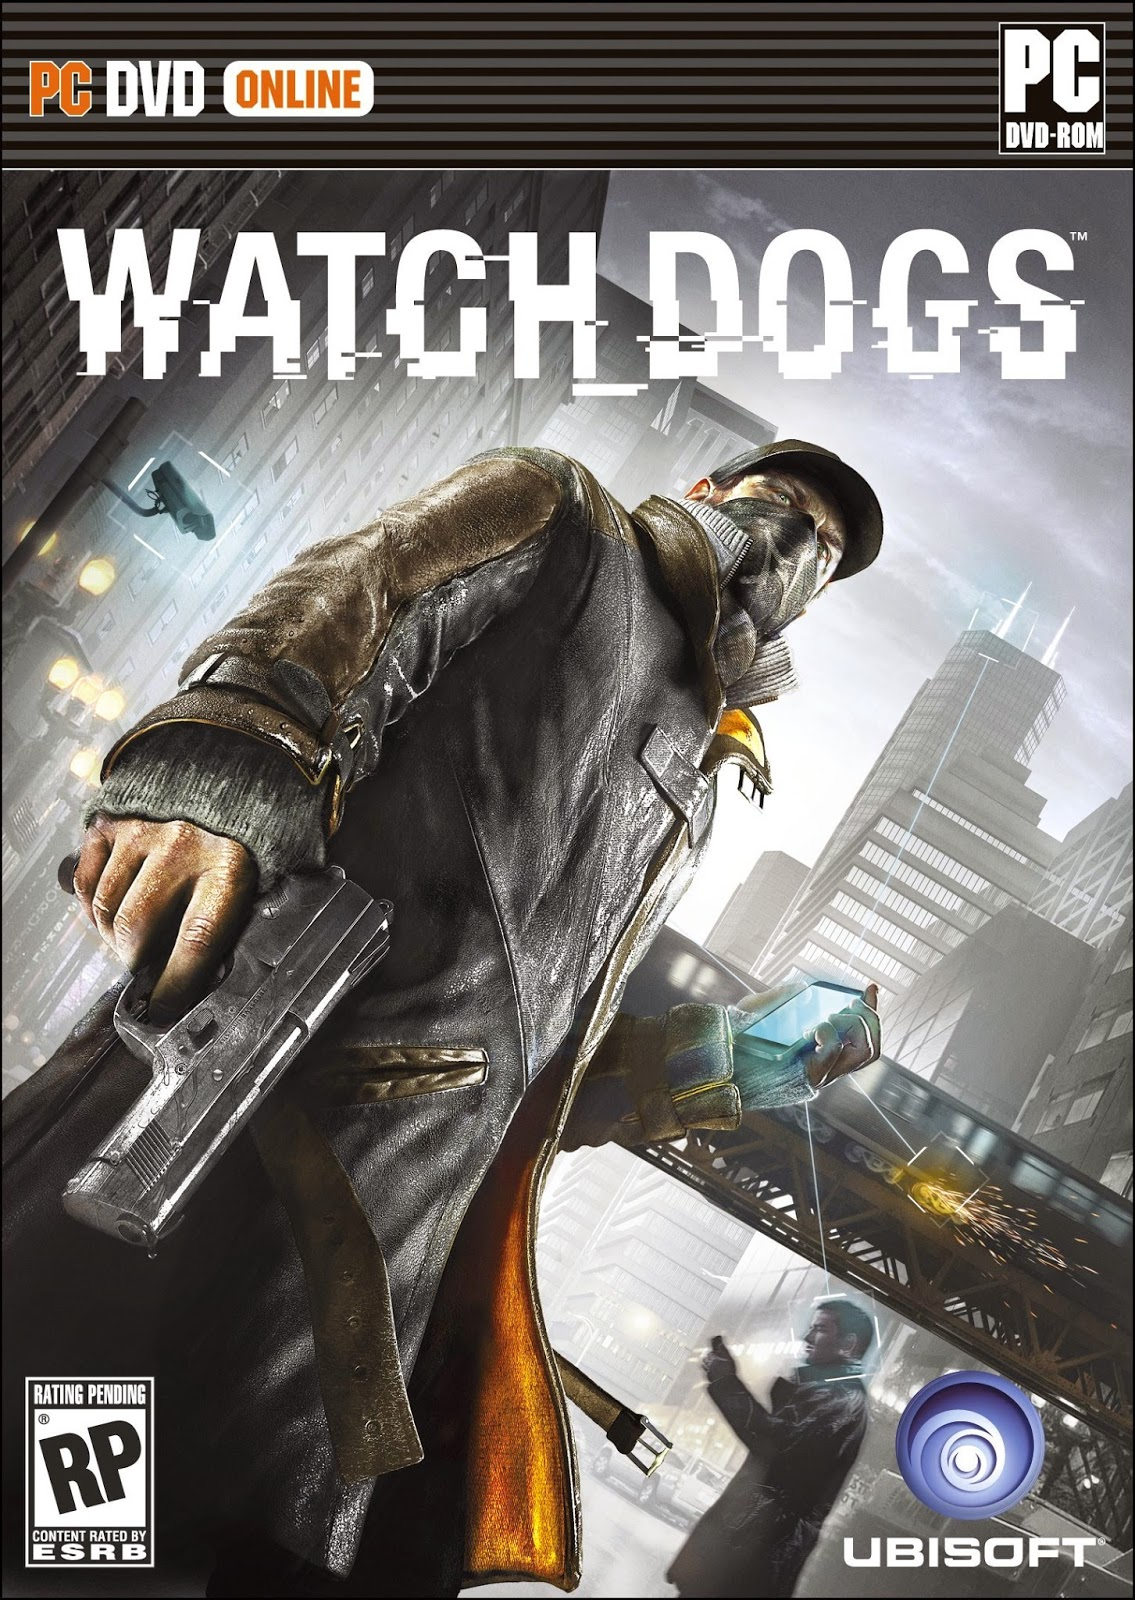 Watch Dogs (PC) – Requisitos mínimos/recomendados